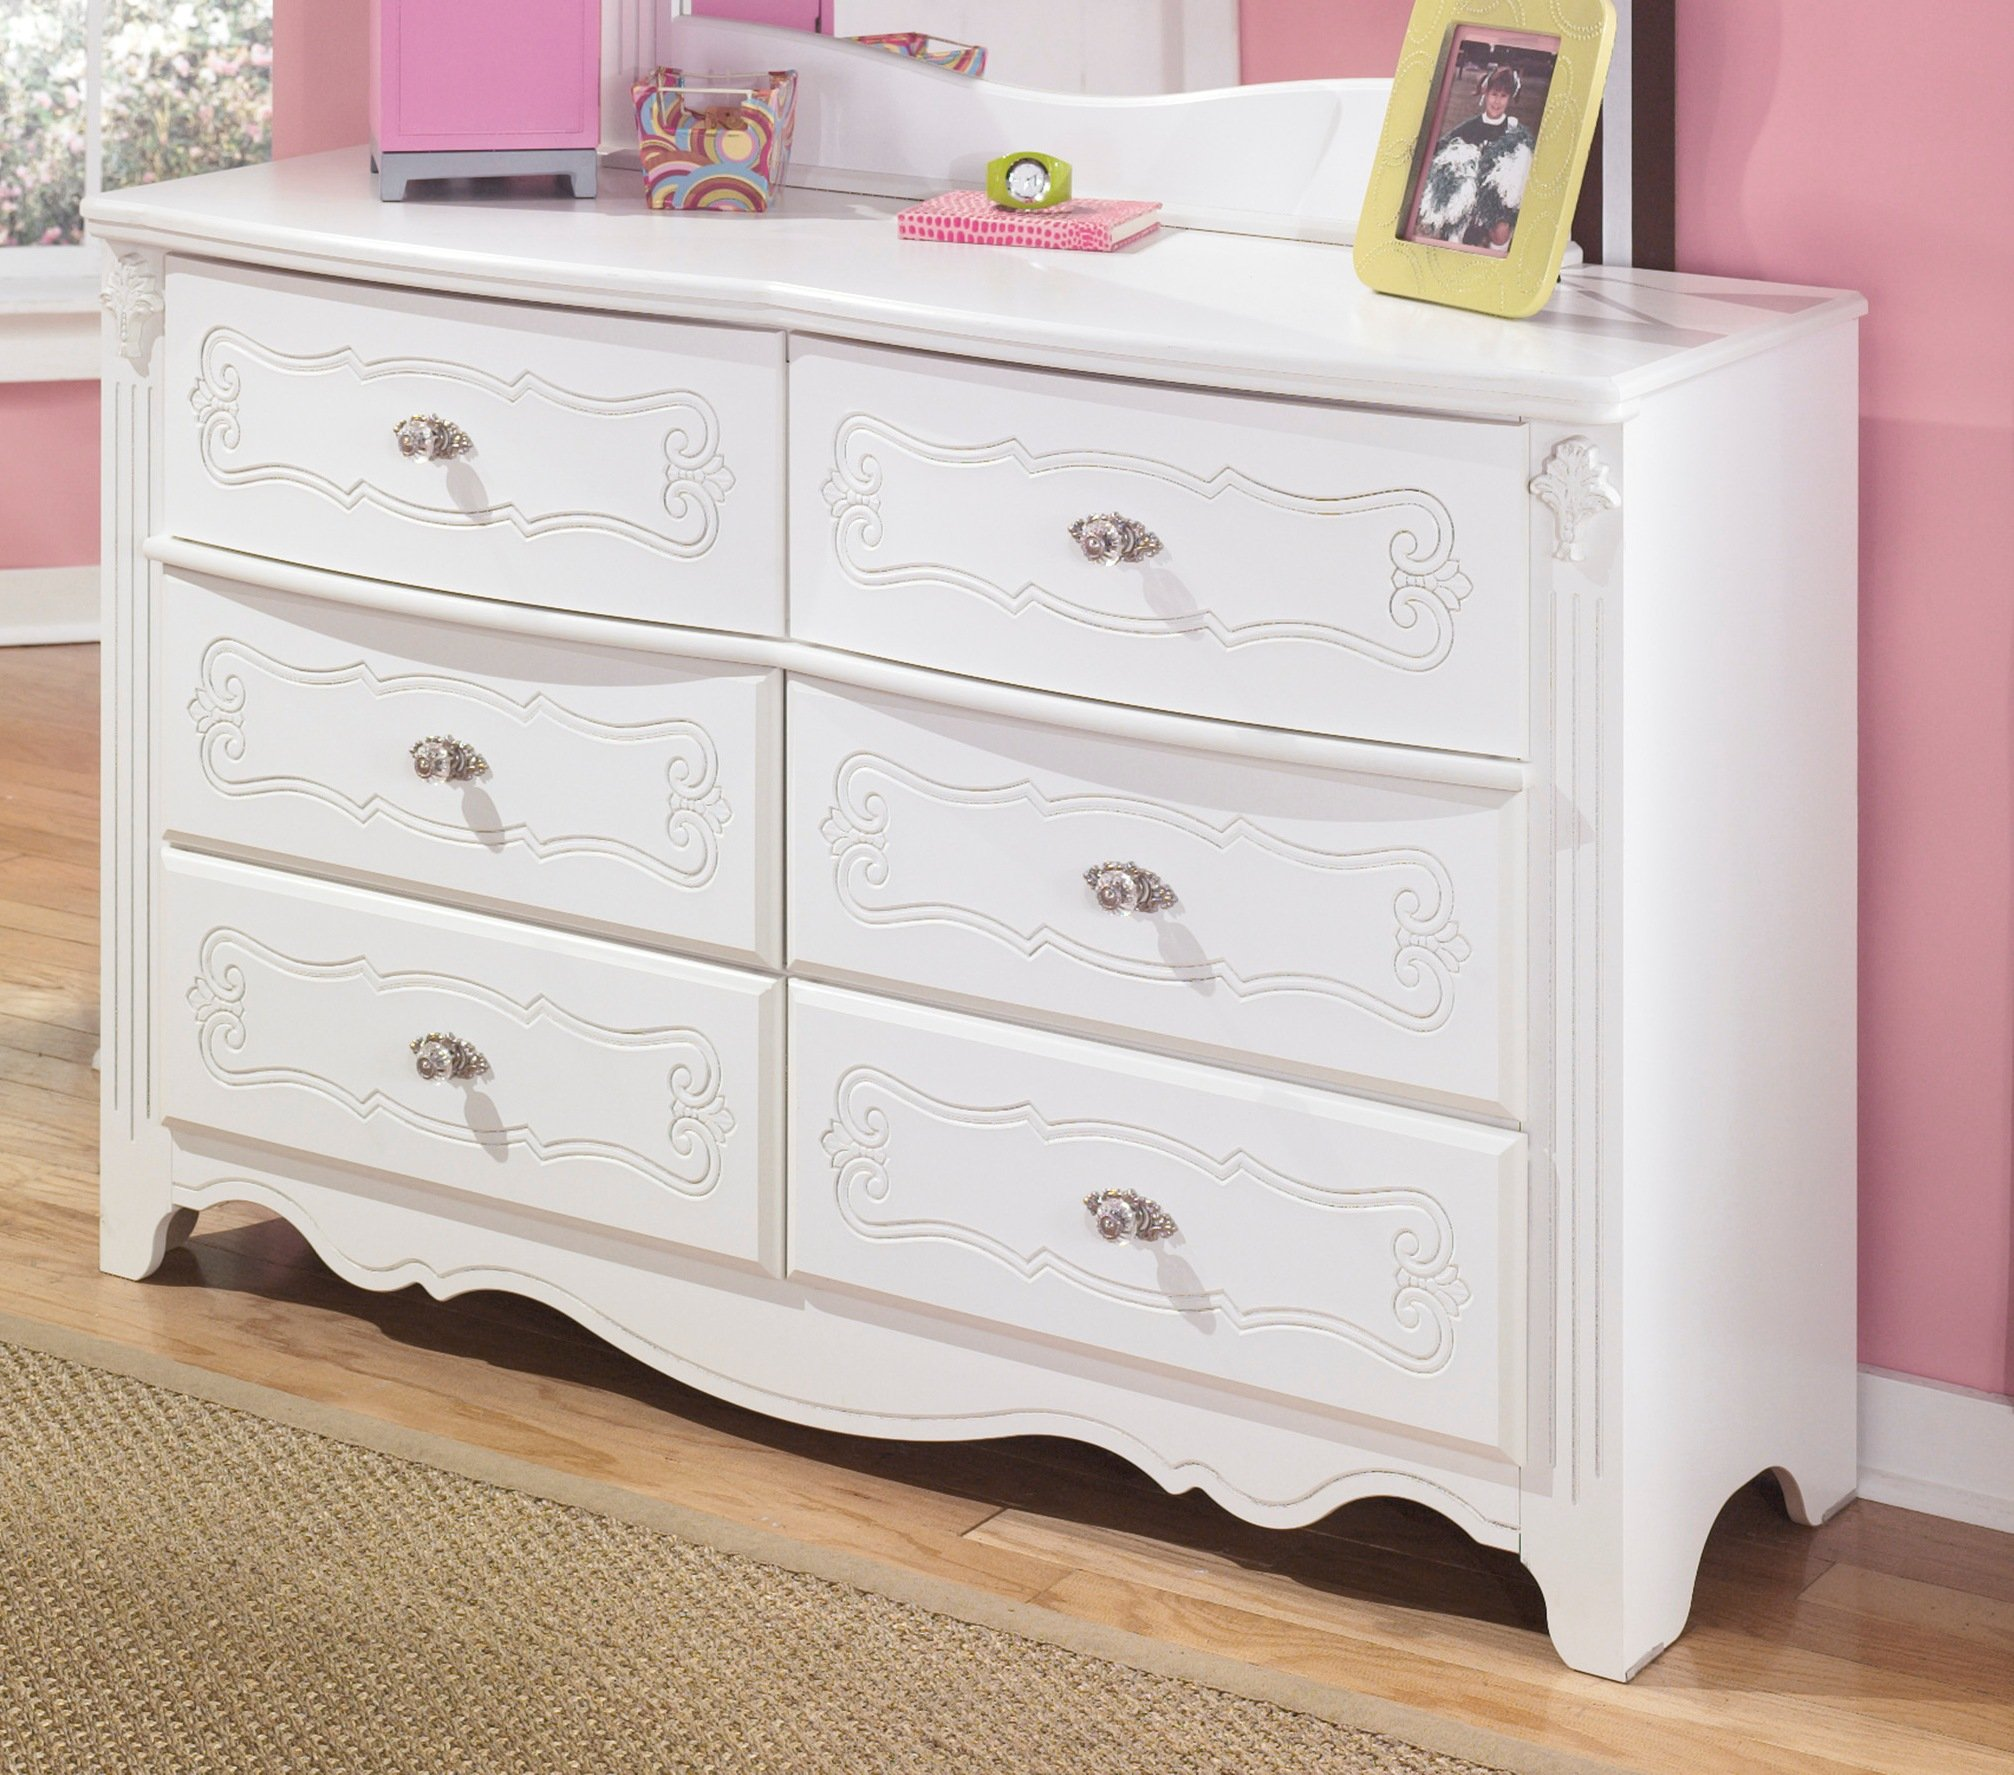 Ashley Furniture Signature Design - Exquisite Dresser - 6 Embossed Drawers - Kids Room - French Styling - White